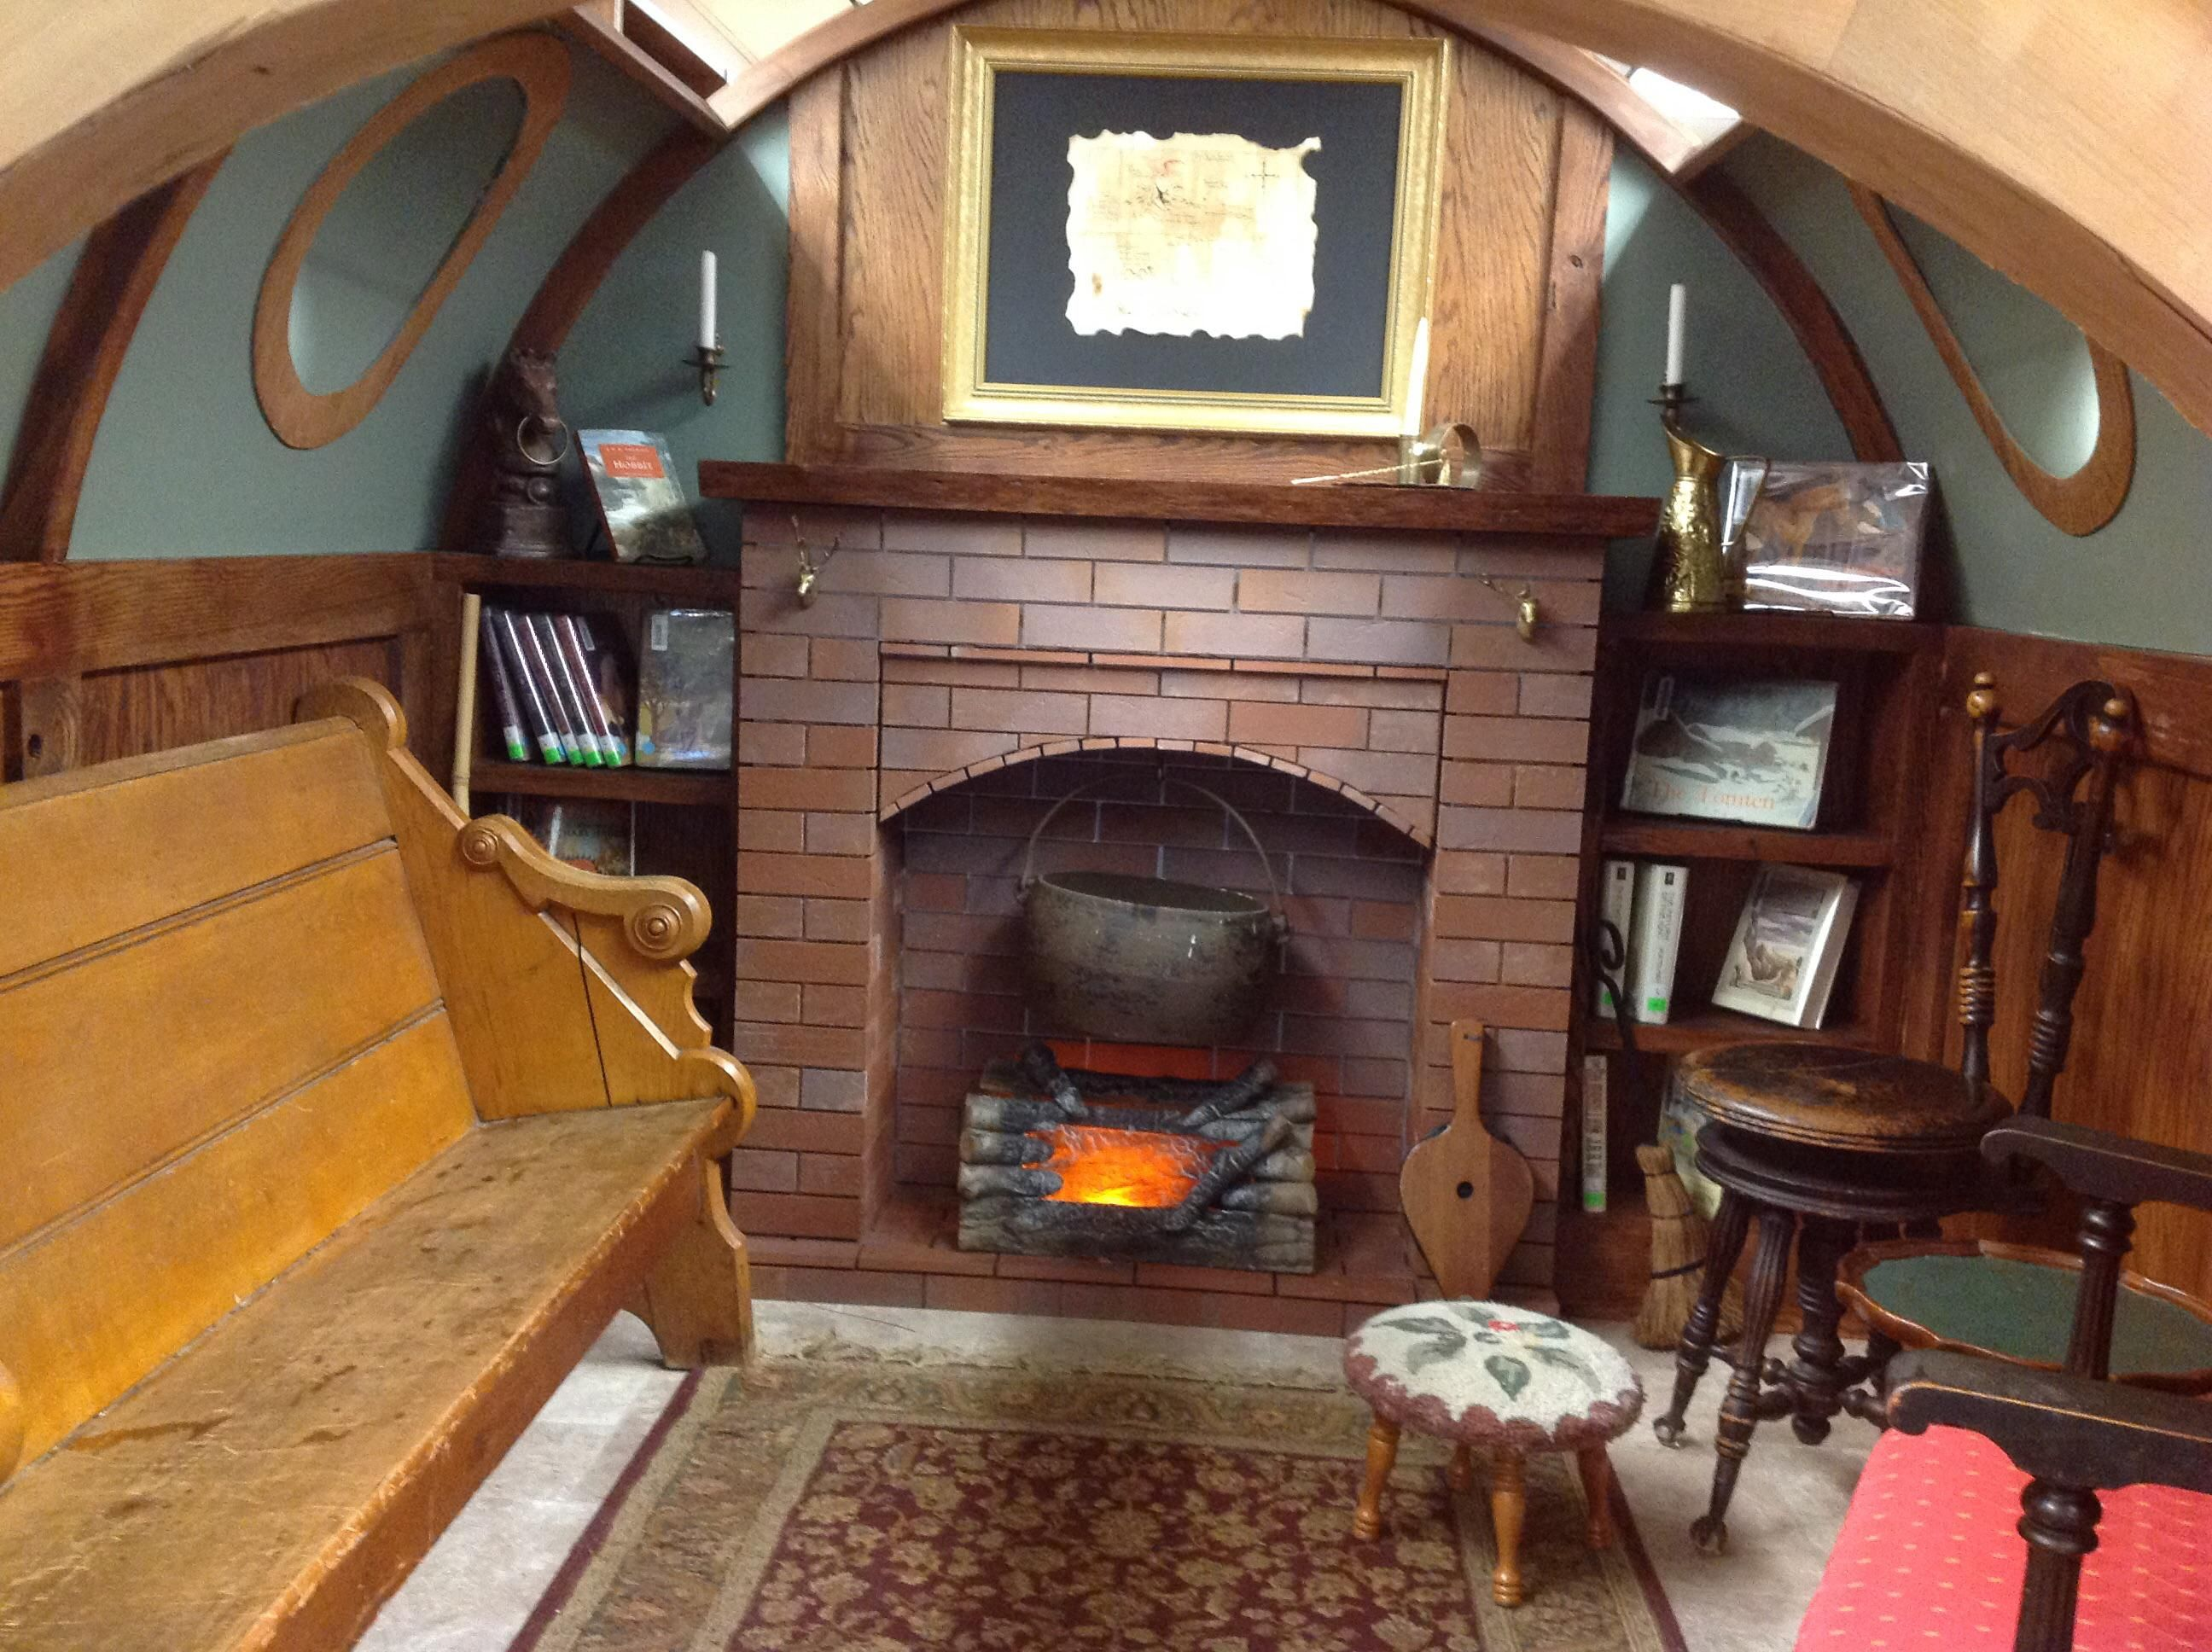 Built This Hobbit House Reading Nook For My Kids School Library Cozy Up And Read A Book Check Out Desigedecors Com To Hobbit House Cozy Place Interior Dsign